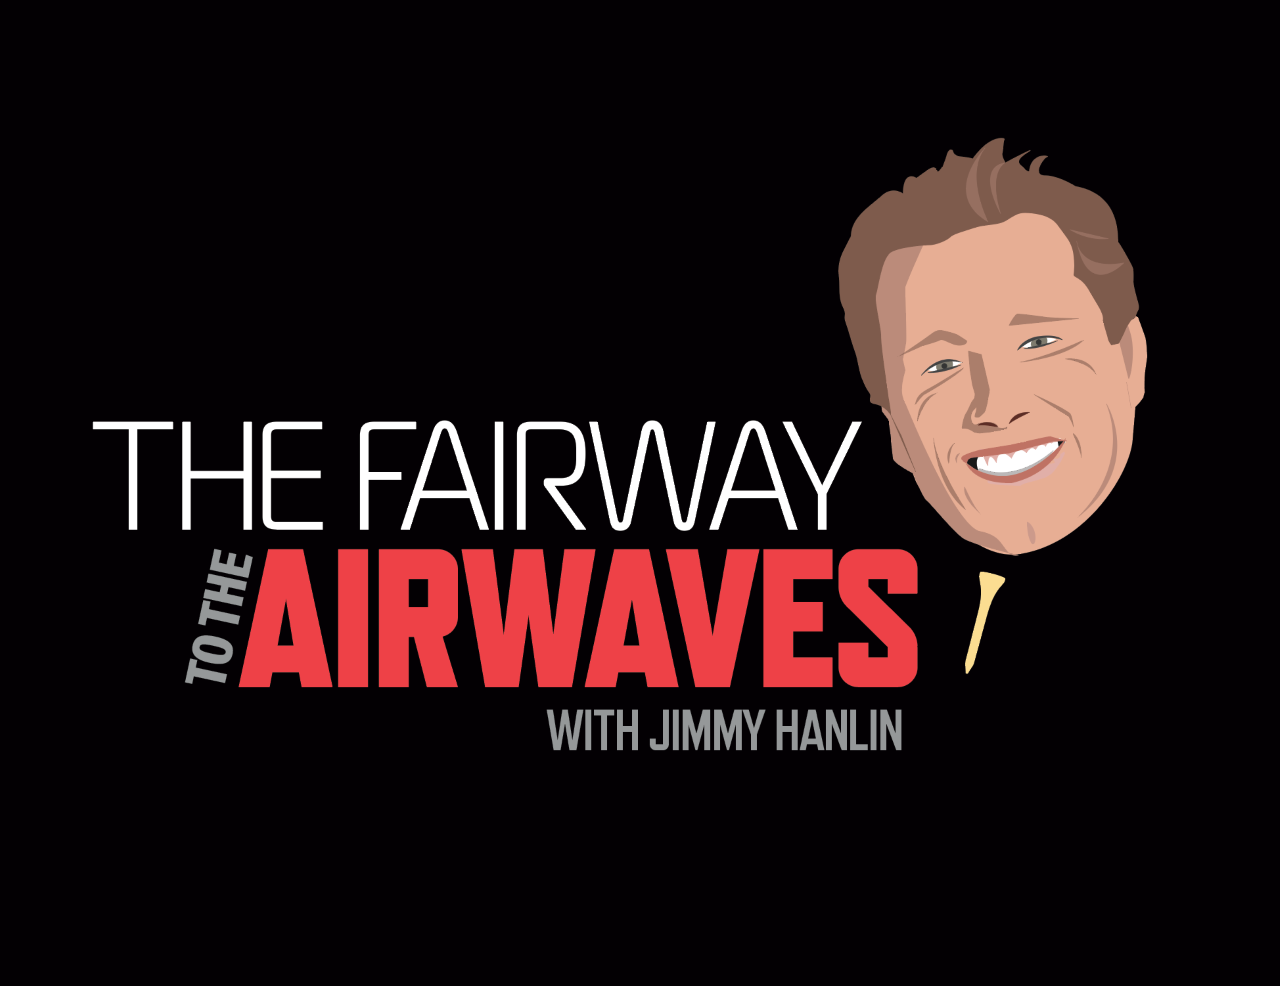 The Fairway to The Airwaves